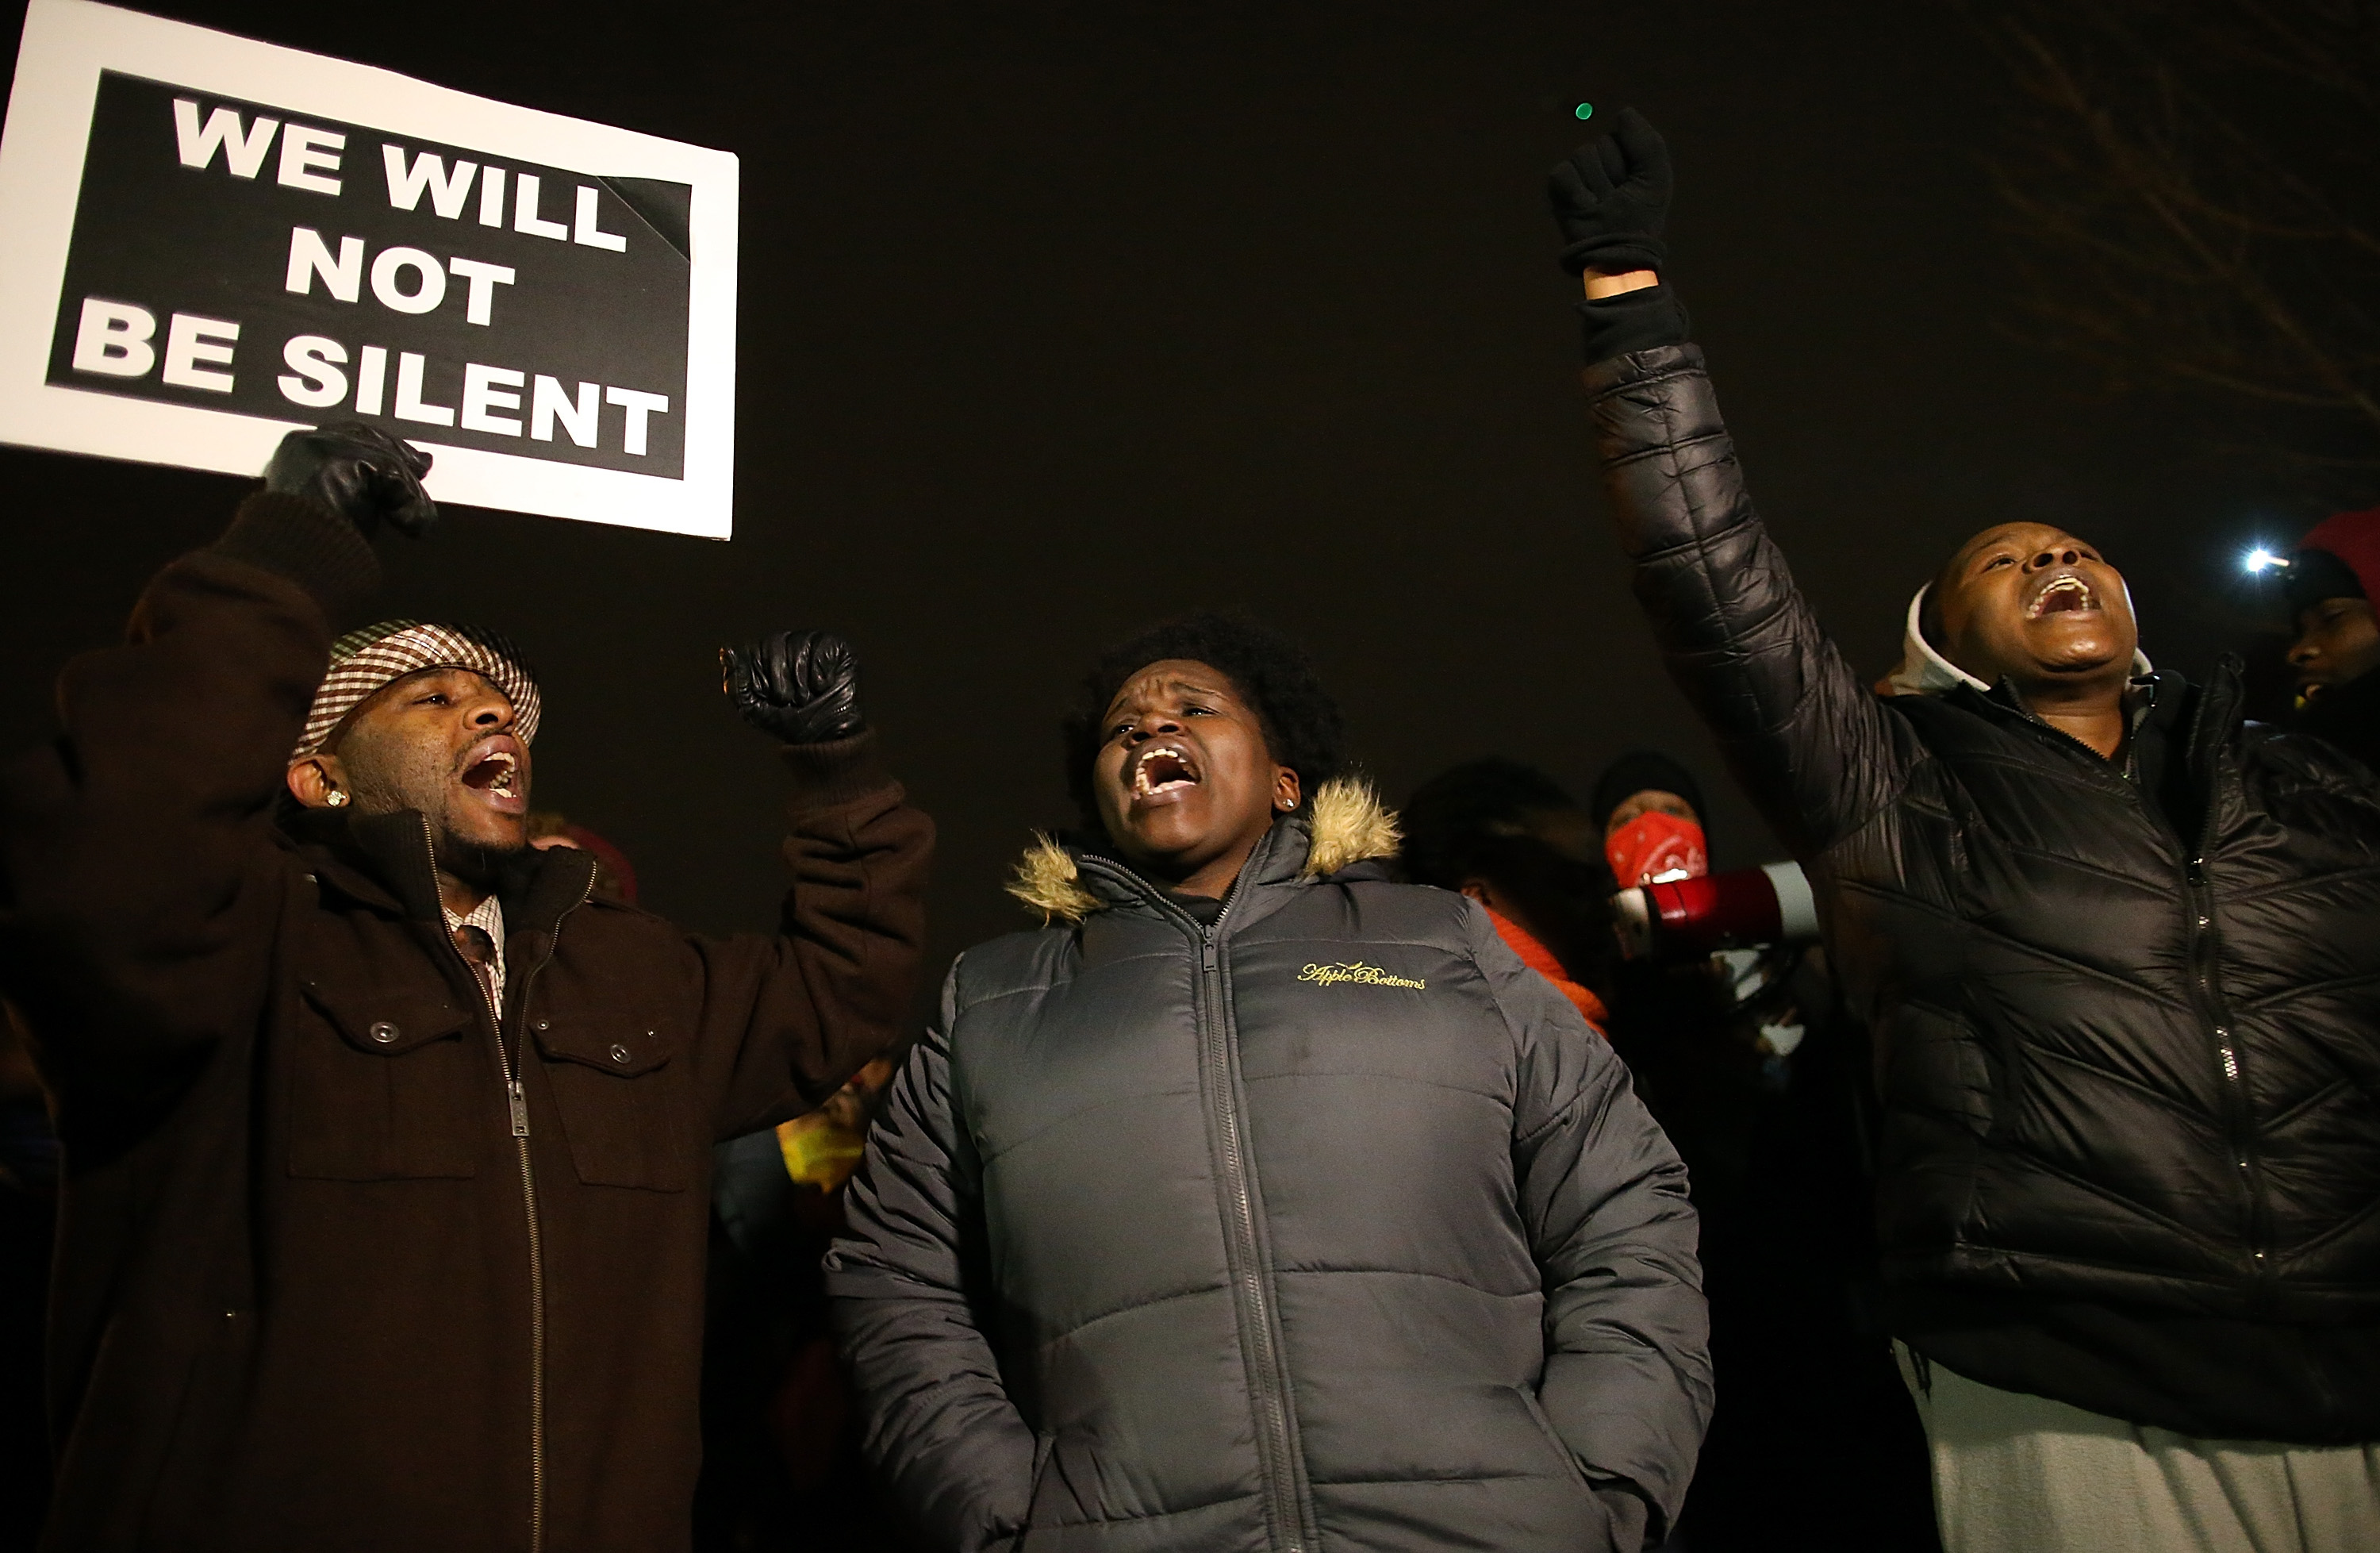 Demonstrators block traffic as they protest in front of the Ferguson police department on November 24, 2014 in Ferguson, Missouri. A St. Louis County grand jury has decided to not indict Ferguson police Officer Darren Wilson in the shooting of Michael Brown.